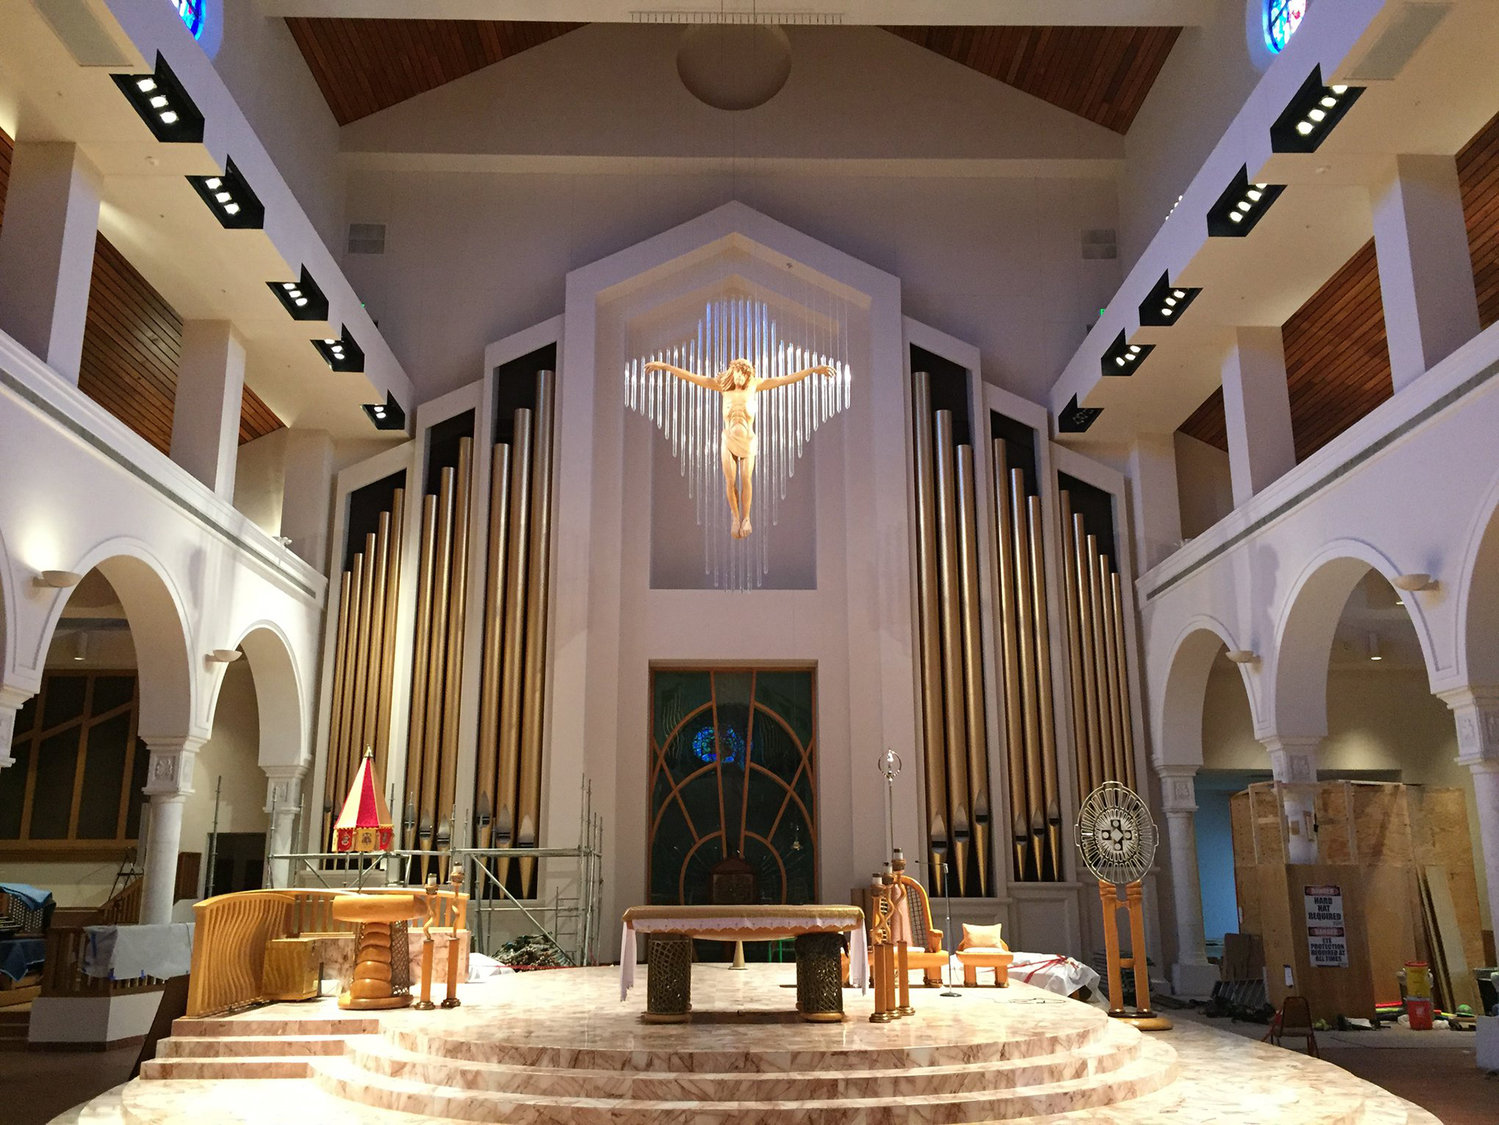 Organ pipes are seen in this undated photo near the altar at the Basilica of the National Shrine of Mary, Queen of the Universe in Orlando, Fla. The basilica recently completed the installation of 5,271 pipes, some reaching has high as 37 feet.